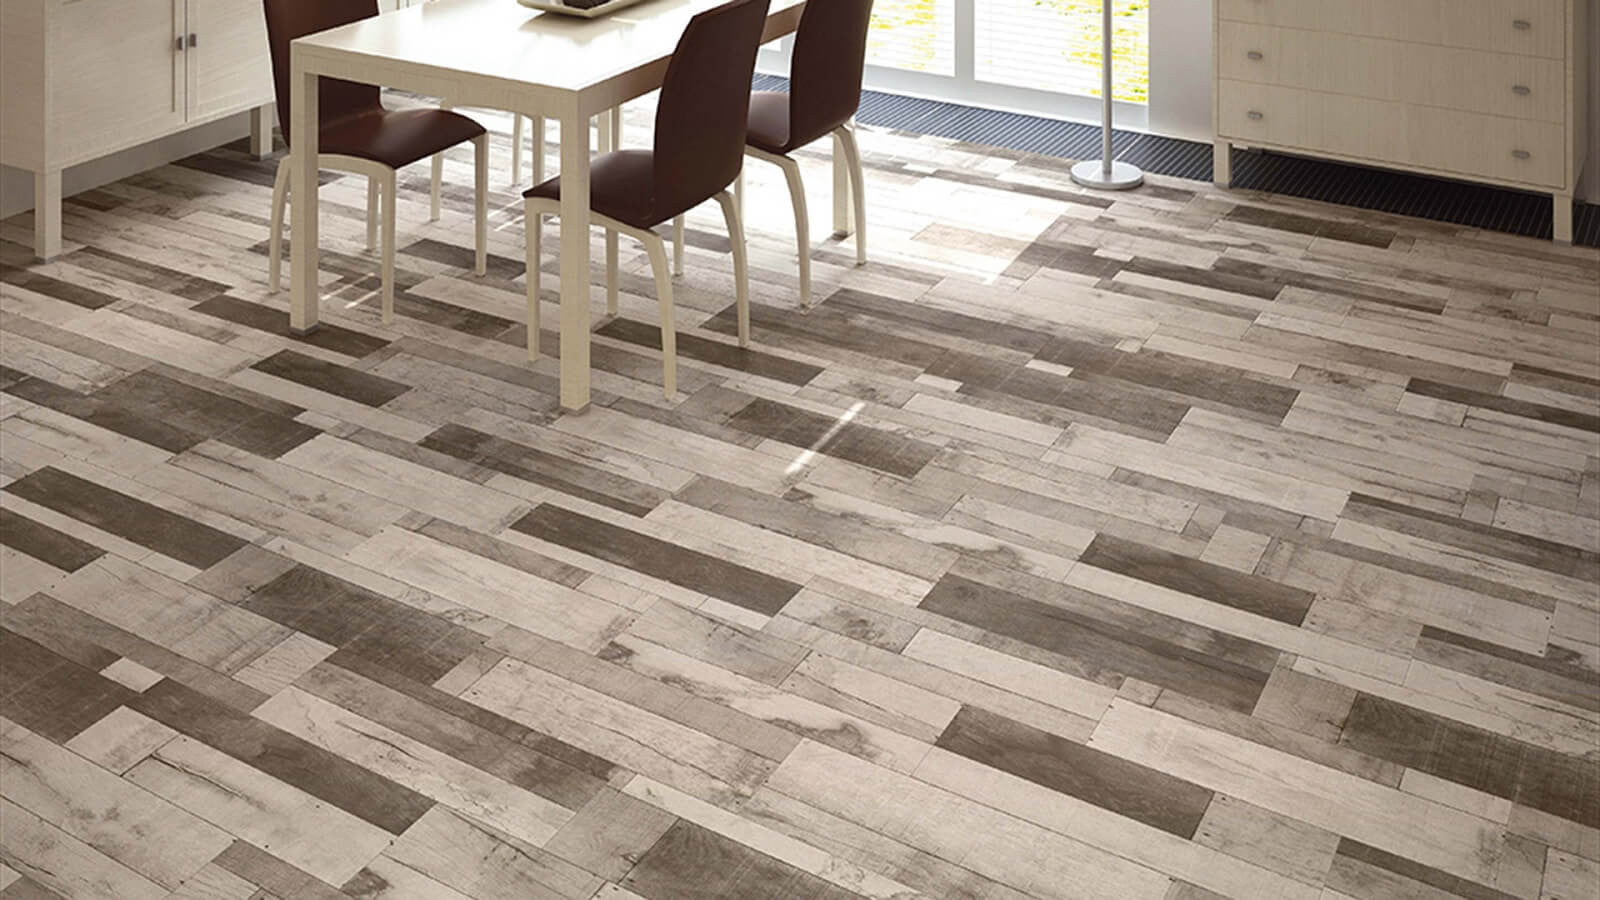 Wood effect floor tiles by spains azulindus to transform your home madera grey wood effect tiles on kitchen floor with table and chairs dailygadgetfo Choice Image